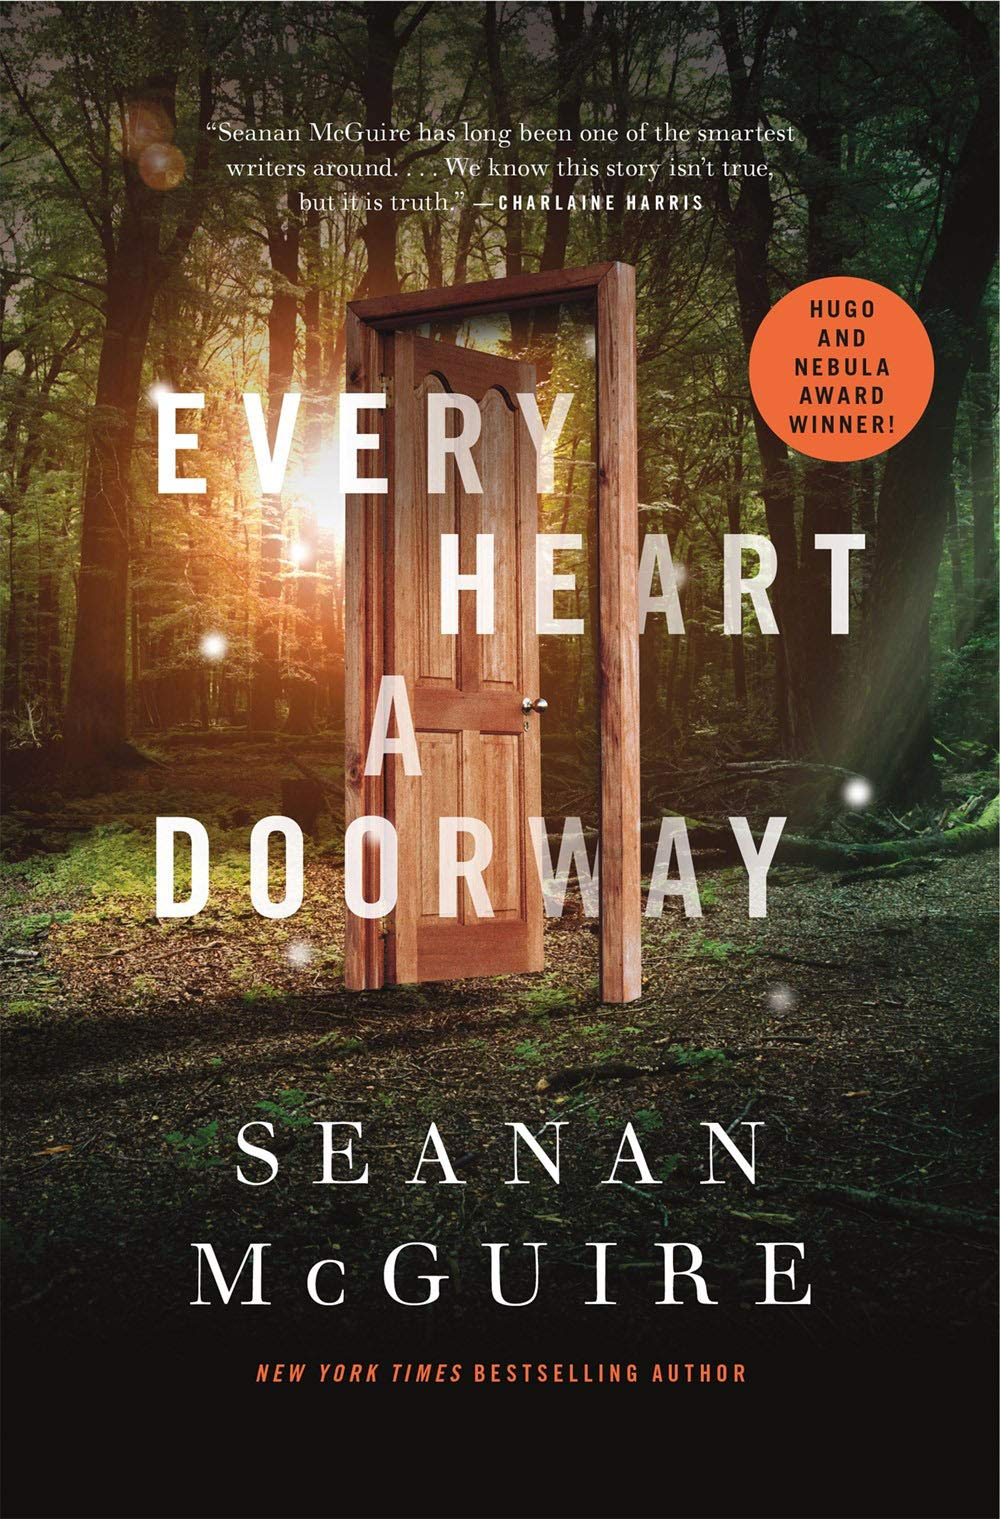 The cover of Every Heart a Doorway. It shows a door in the middle of a forest. There is a yellow glow behind it.